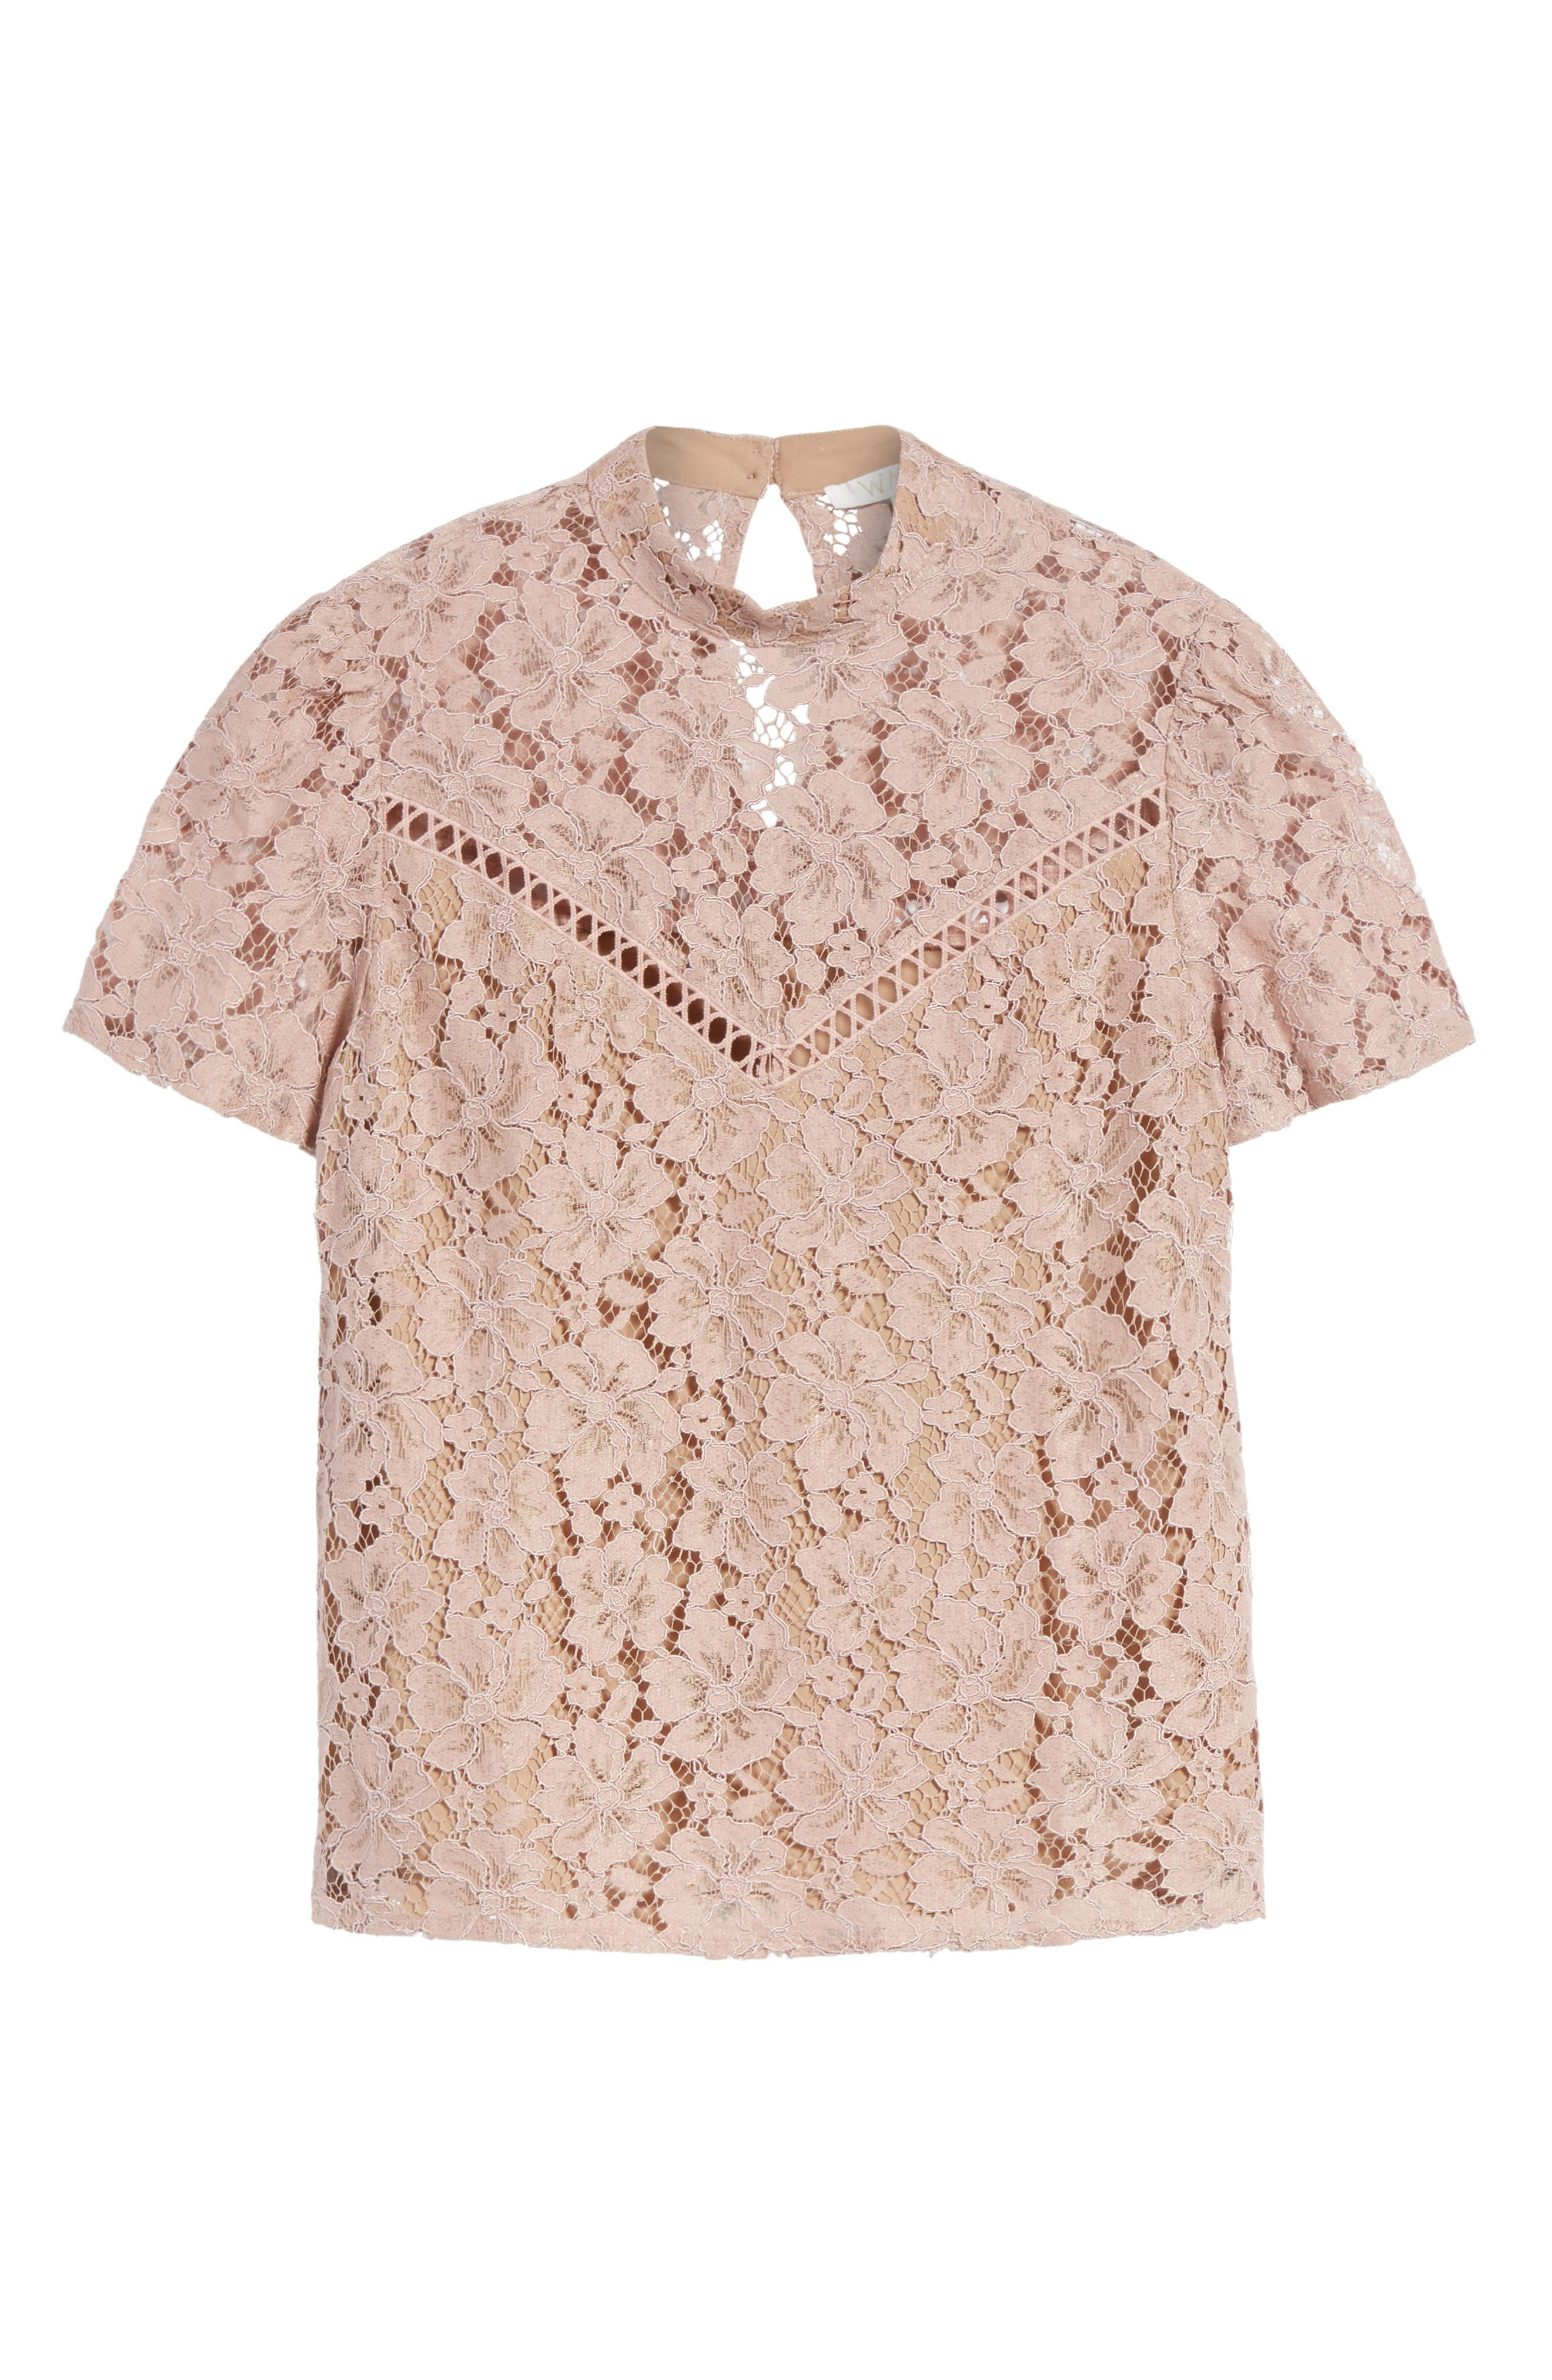 Greyson Lace Top,                             Alternate thumbnail 6, color,                             650